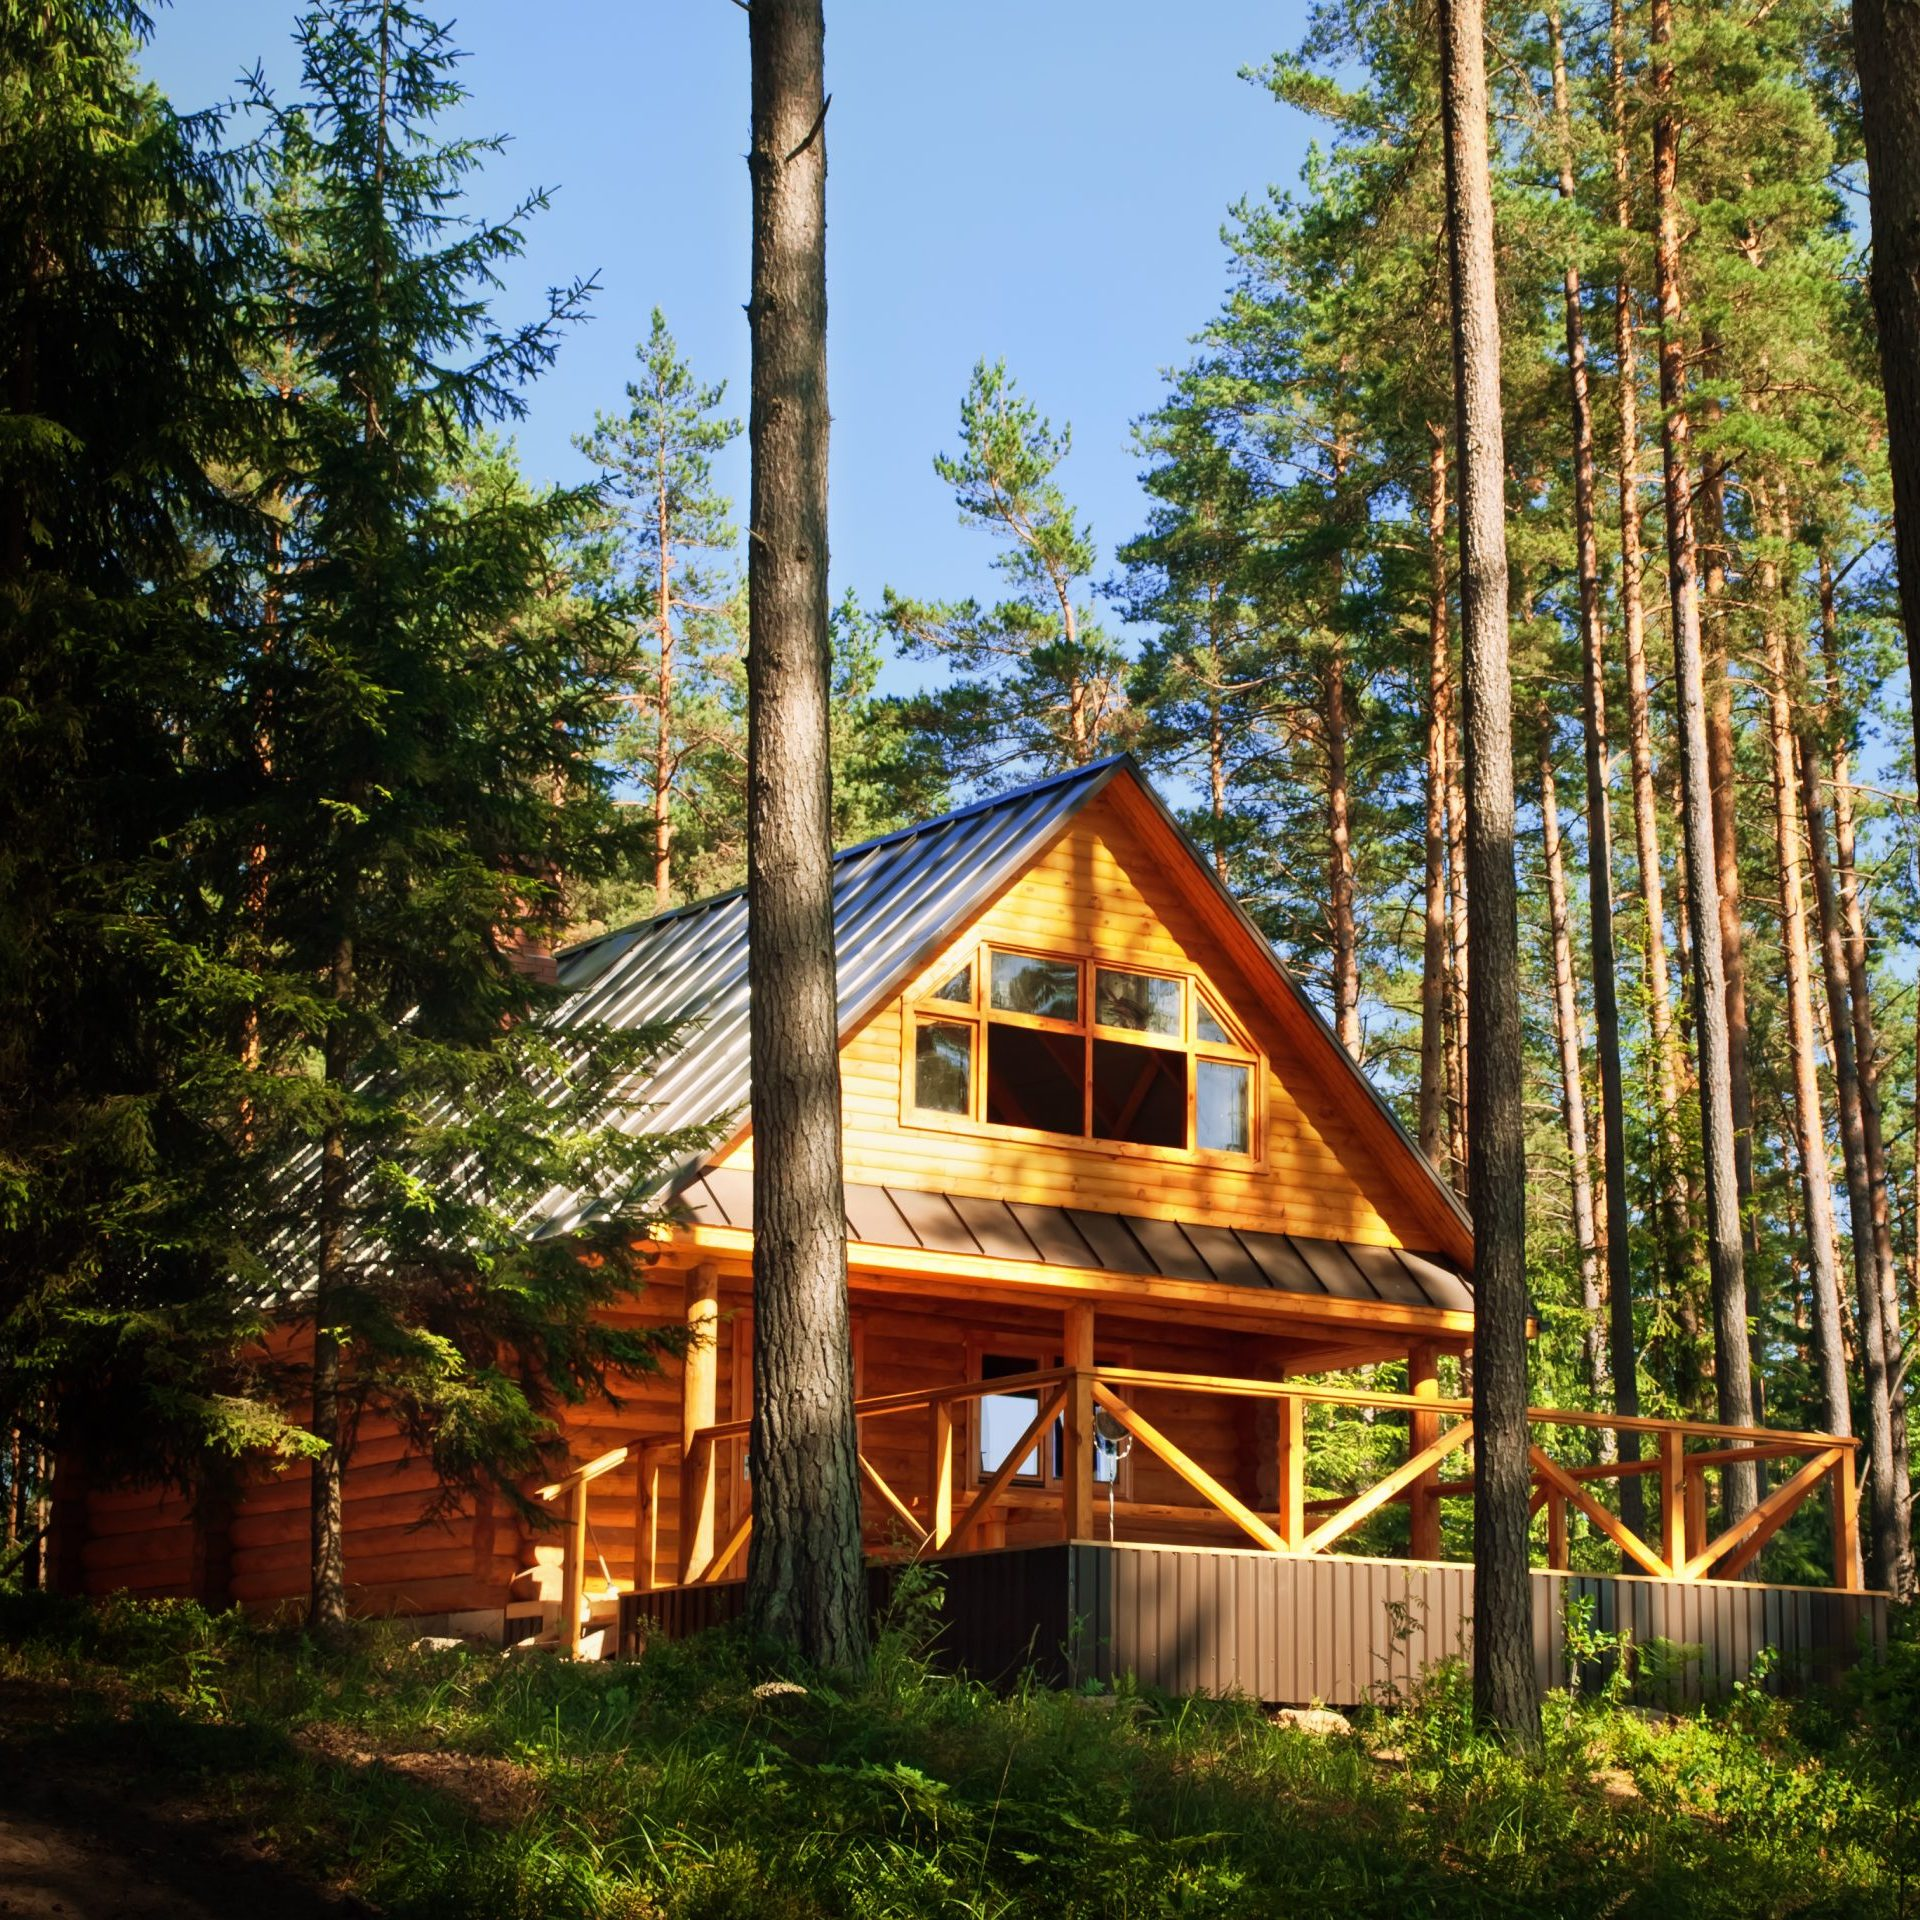 Wooden log House in the sunny forest